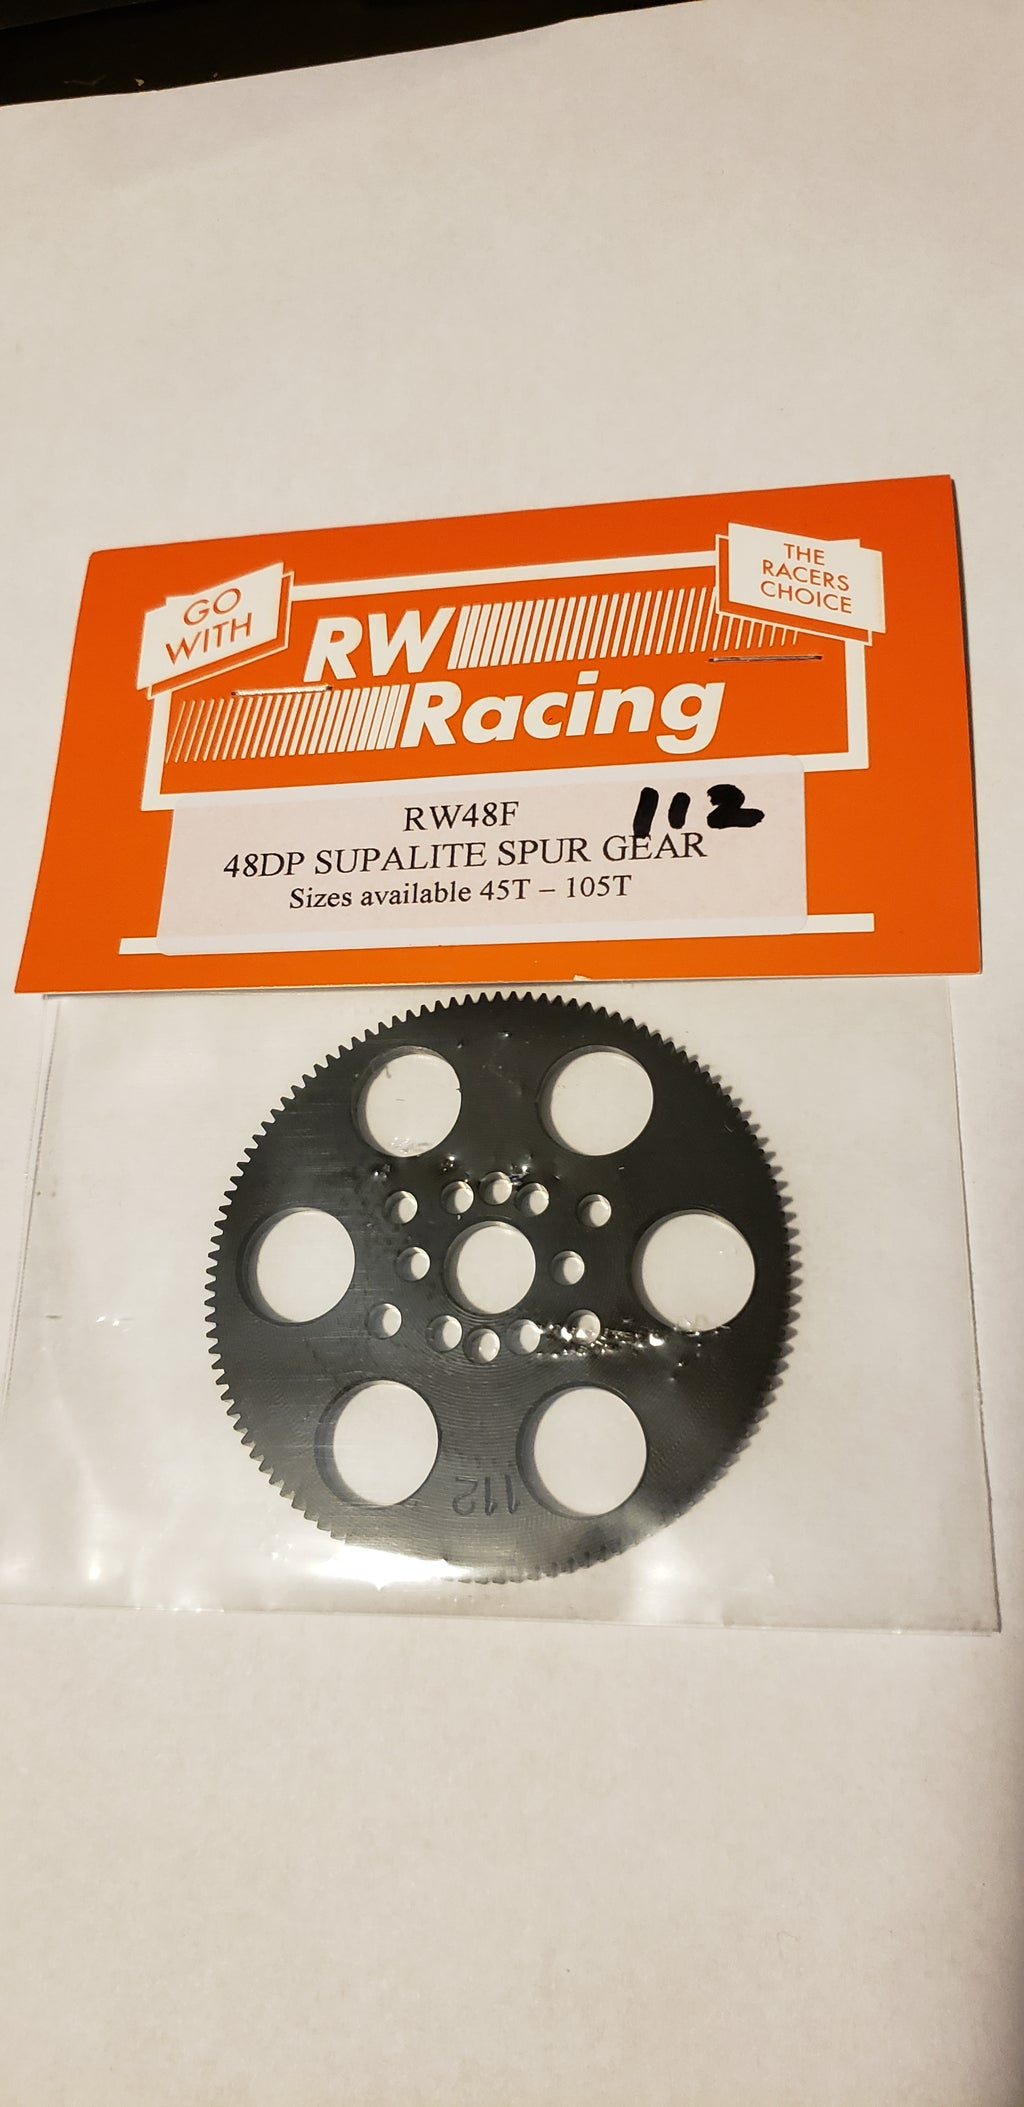 RW Racing Spur Gear 112 tooth 48 pitch for RC drag racing